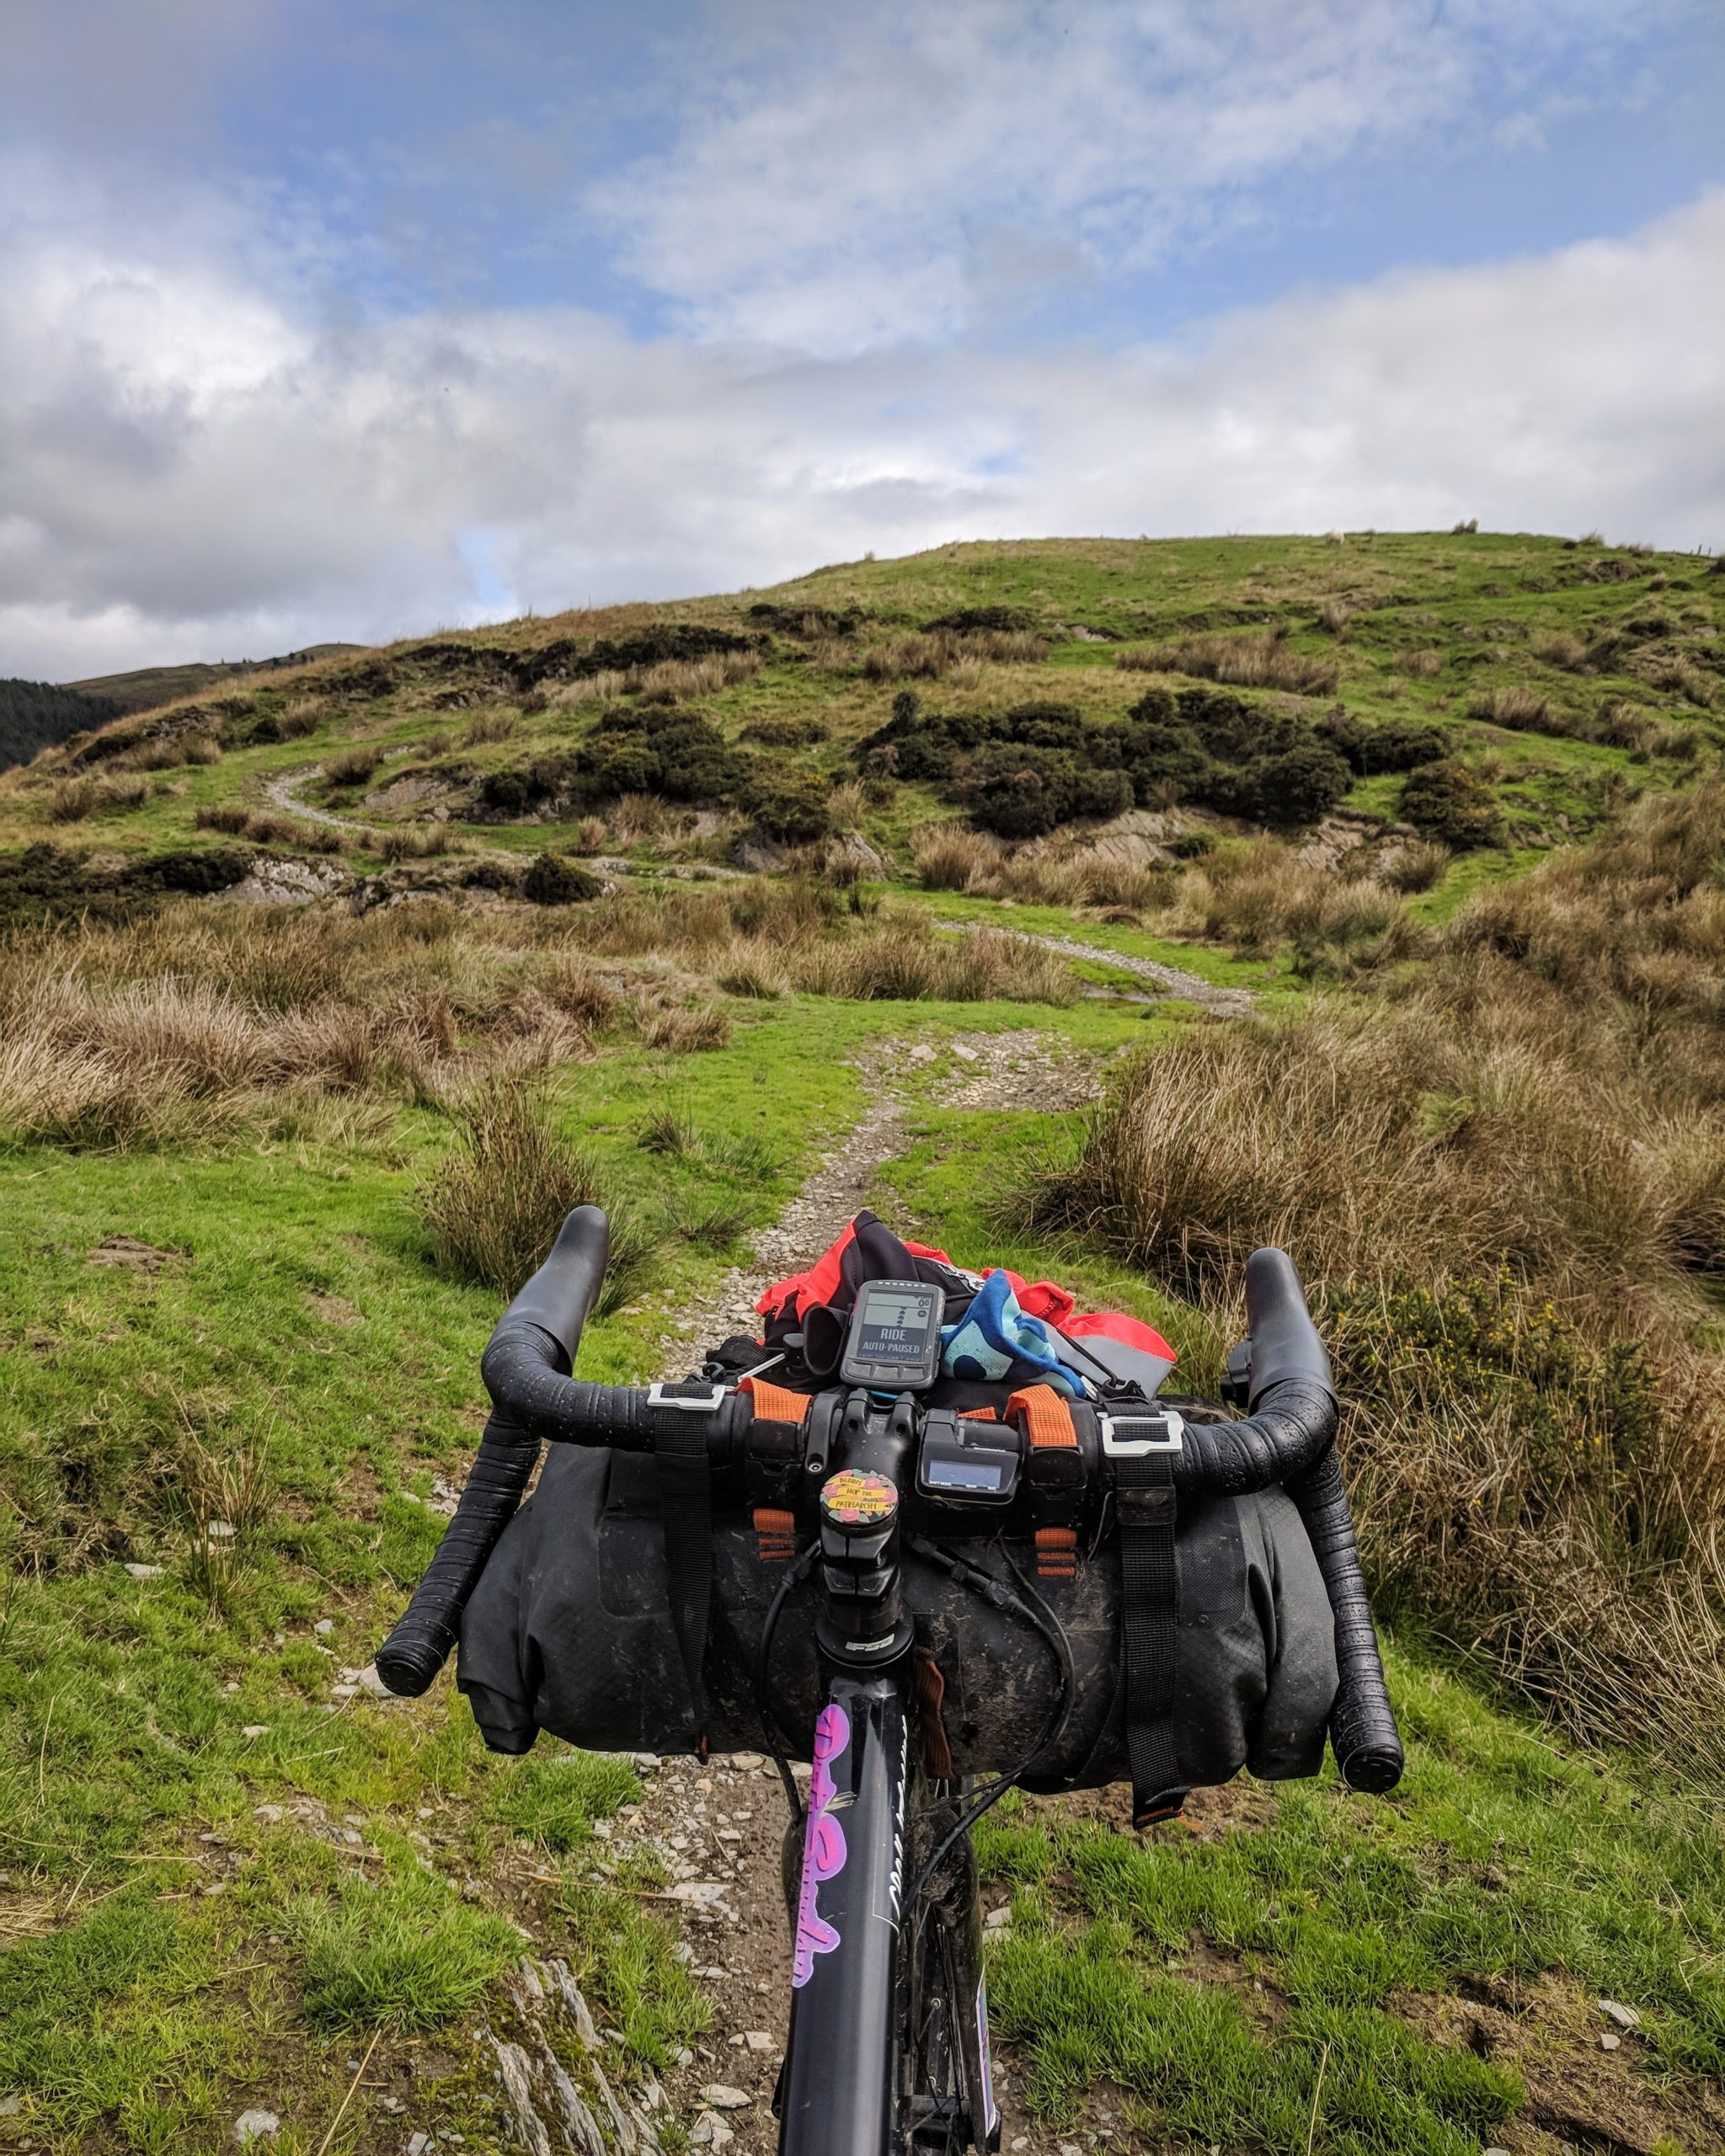 Ortlieb Handlebar Bikepacking Bag review